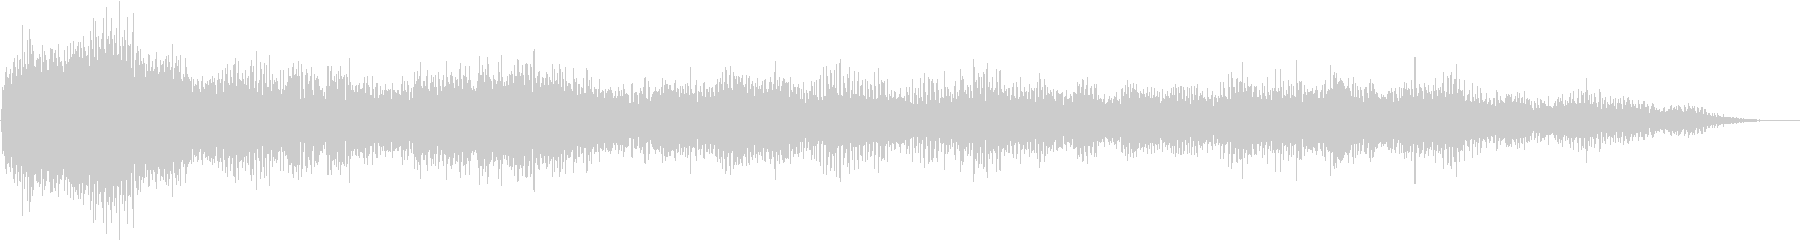 Noise sound source 06 that seems to appear in horror films's unreproduced waveform